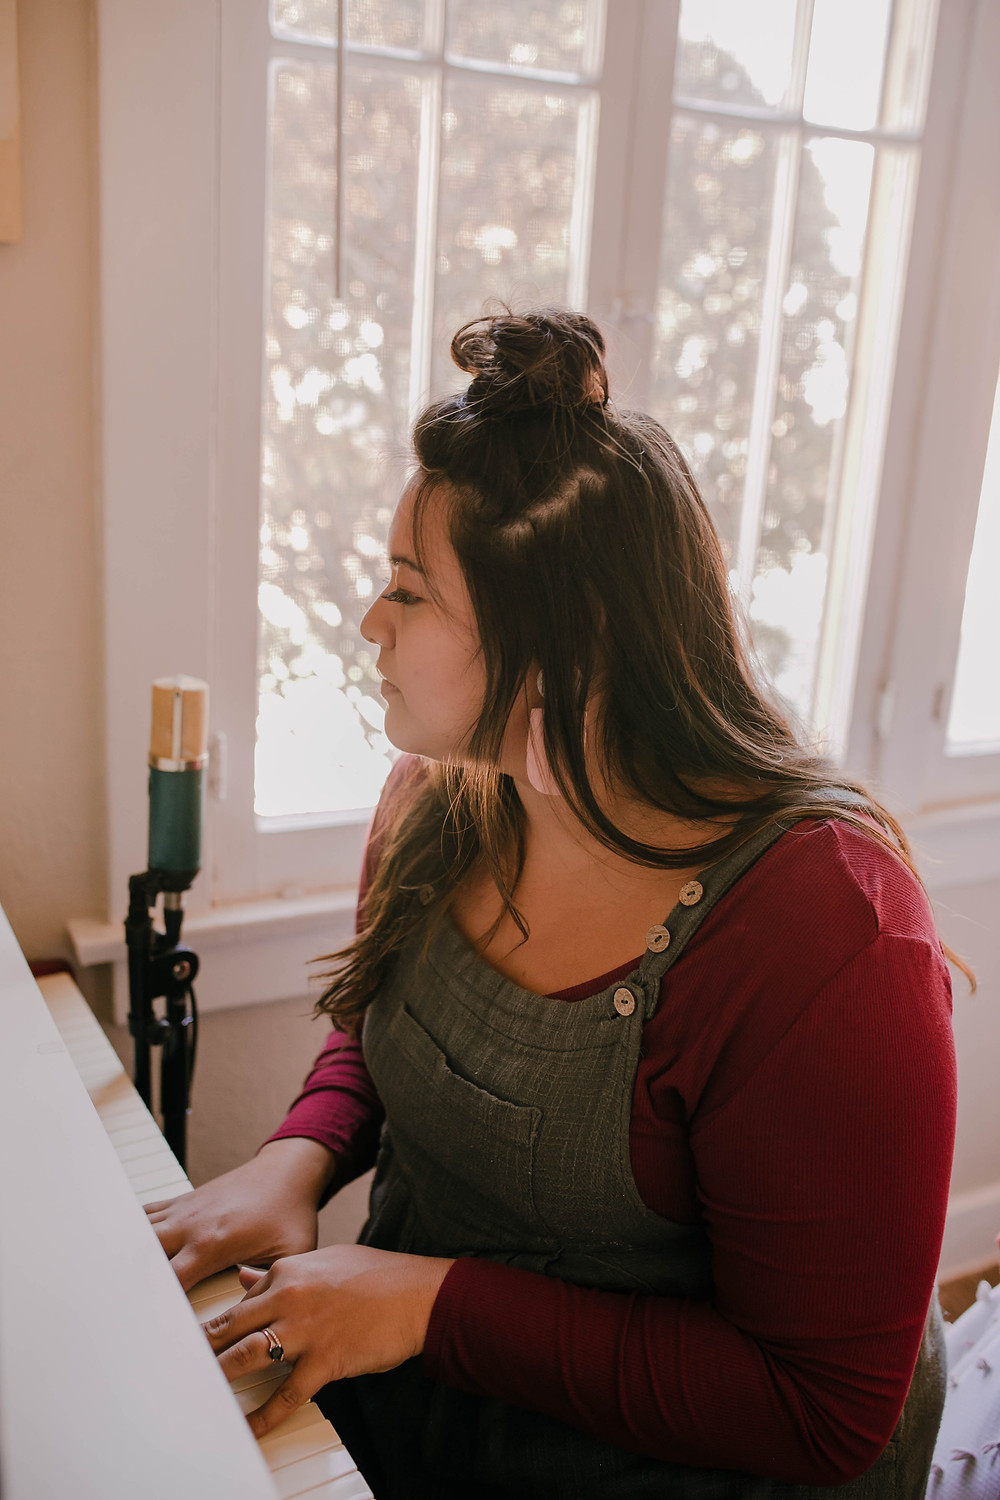 Debrianna is also a singer-songwriter and muscians who releases her melodies through Olive Home.